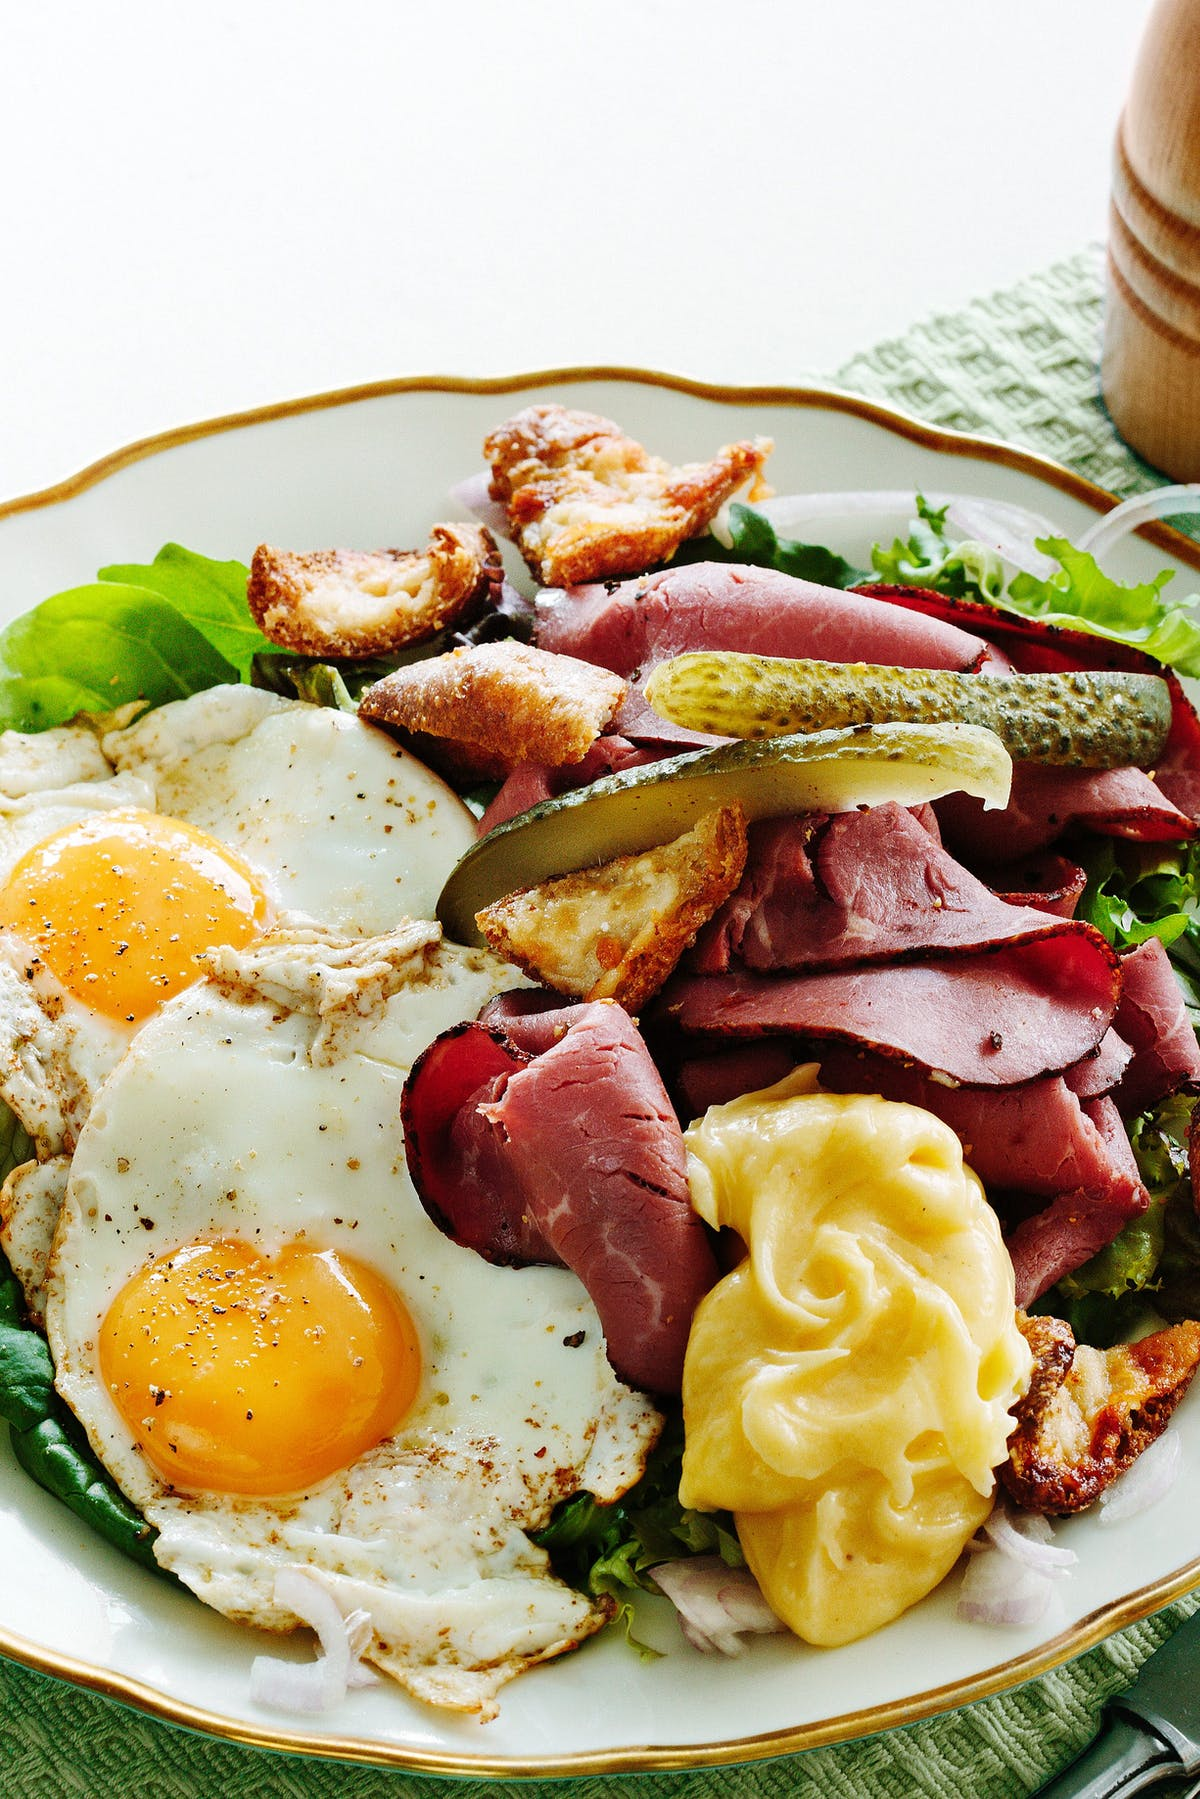 Keto pastrami salad with fried eggs and croutons